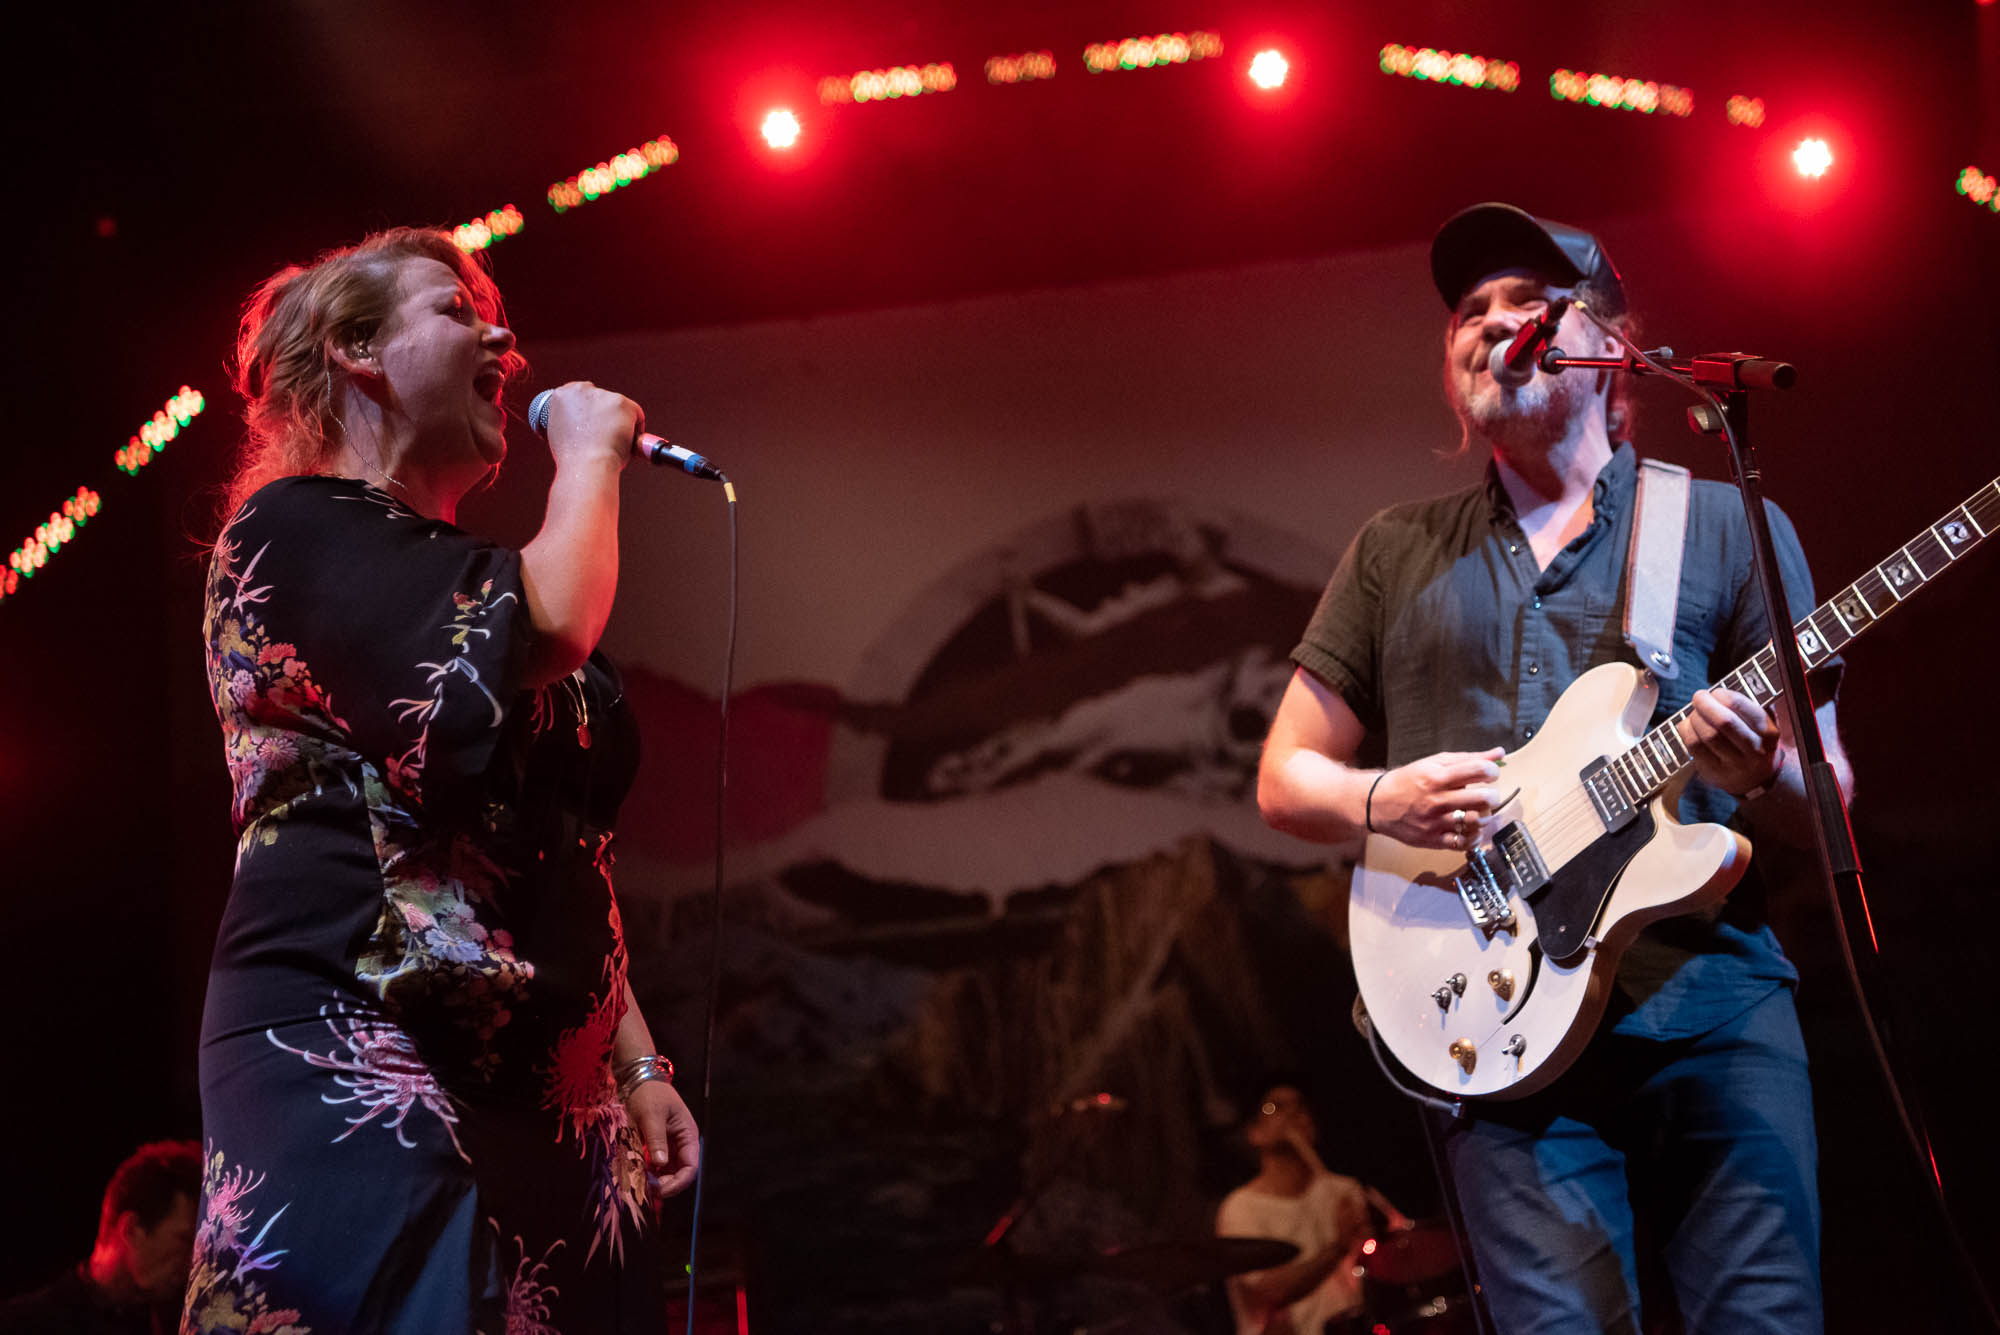 Amy Millan and Kevin Drew of Broken Social Scene performing at BRIC Celebrate Brooklyn! at Prospect Park Bandshell on Thursday, July 25, 2019.